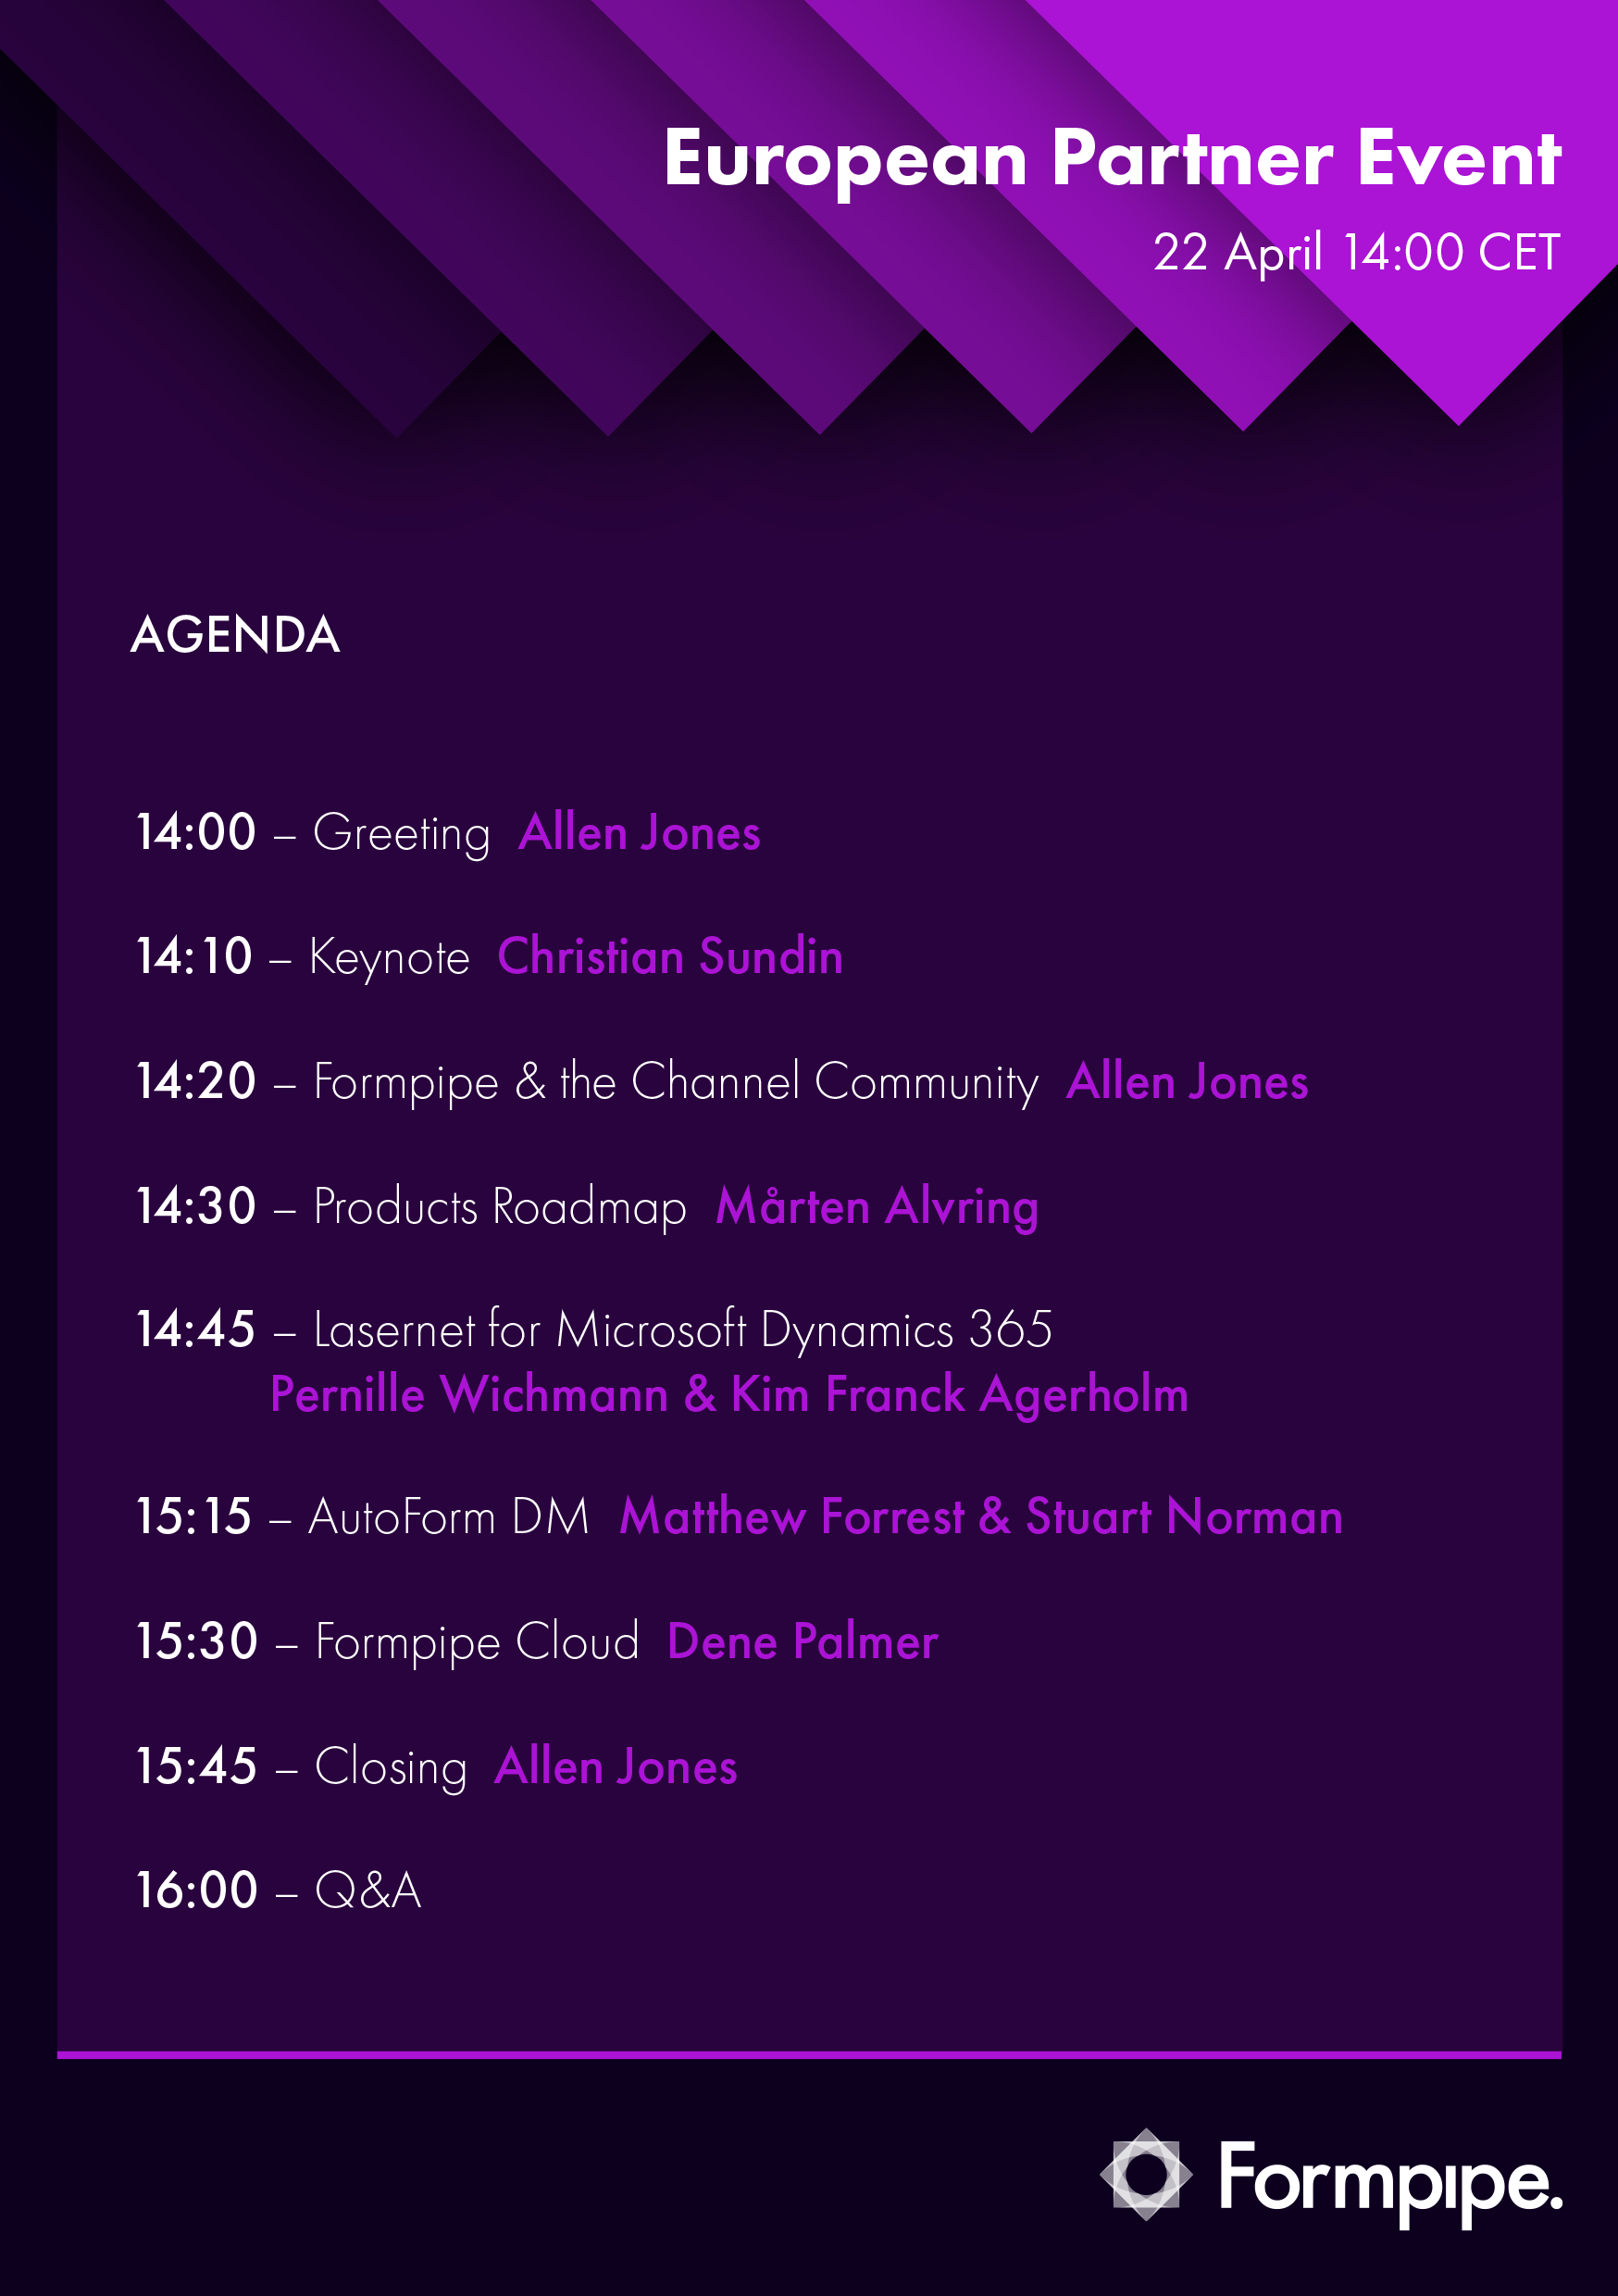 AGENDA: 14.00 Greeting, 14.10 Keynote, 14.20 Formpipe & the Channel Community, 14.30 Products Roadmap, 14.45 Lasernet for Microsoft Dynamics 365, 15.15 Autoform DM, 15.30 Formpipe Cloud, 15.45 Closing, 16.00 Open Q&A